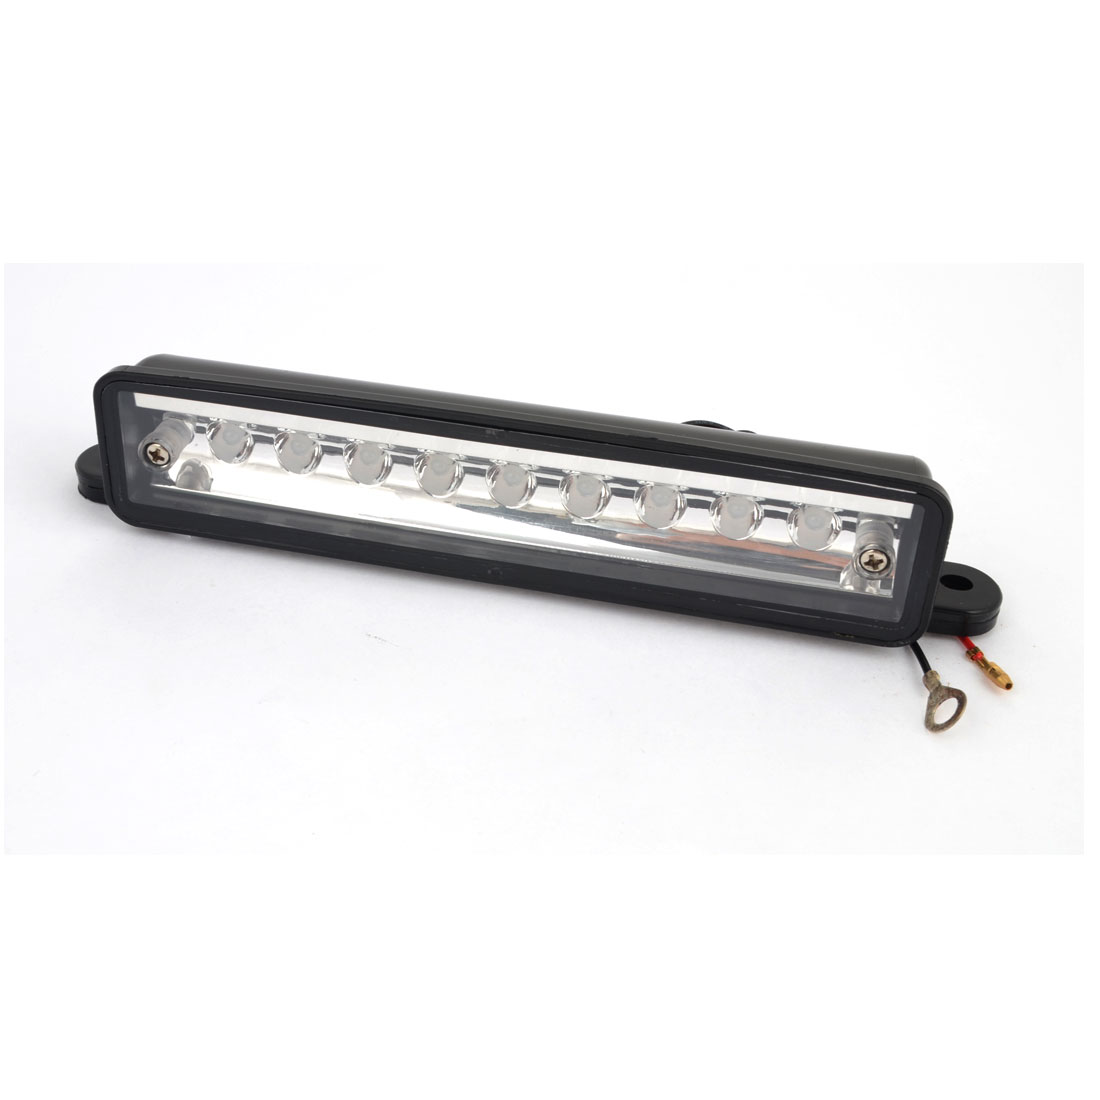 Auto Car White 9 LED Reversing Signal Light License Plate Lamp